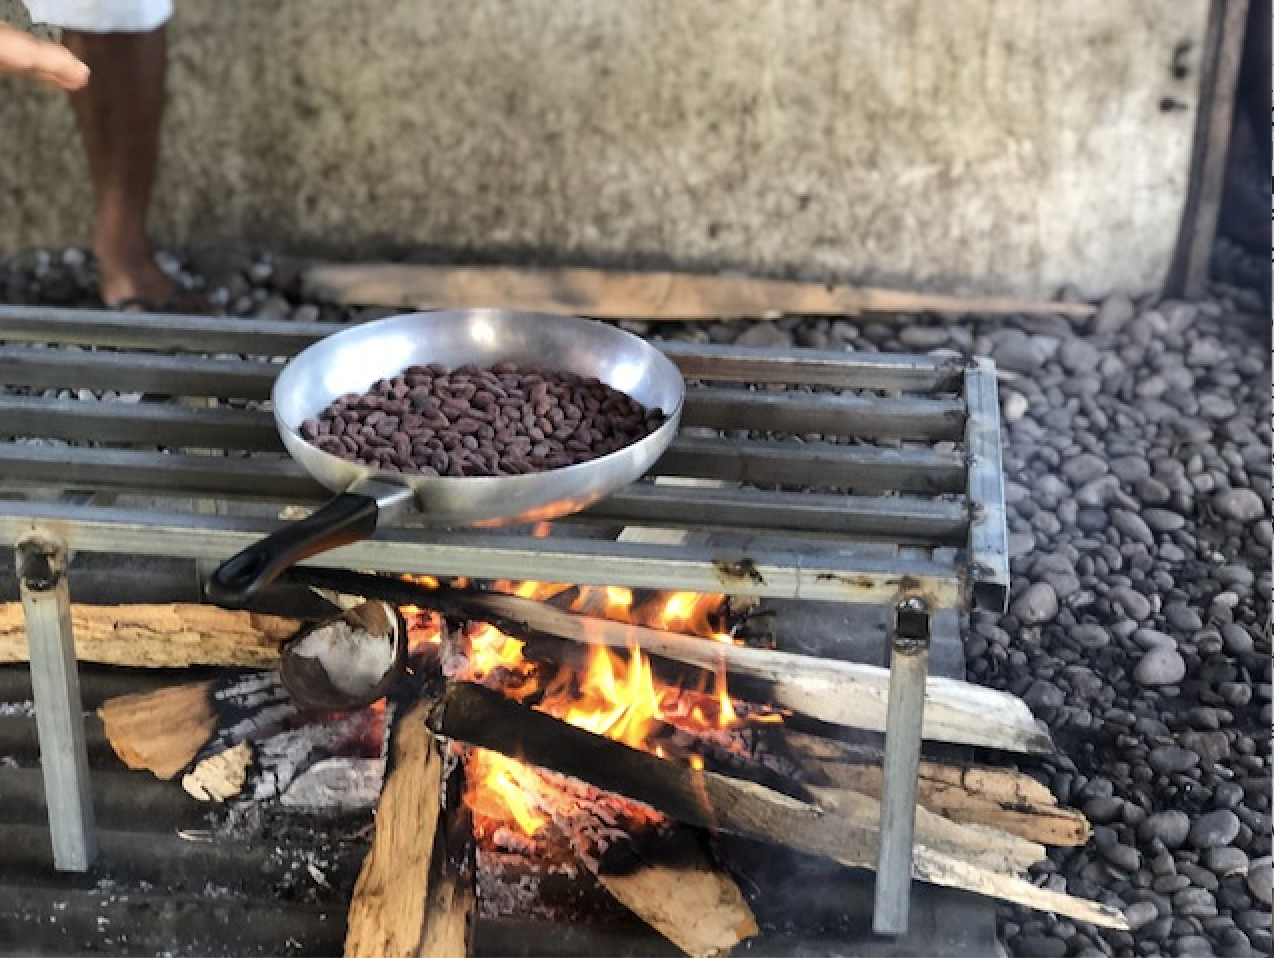 Beans roasting over an open fire, filling the entire village with the aroma, Guadalcanal Solomon Islands.